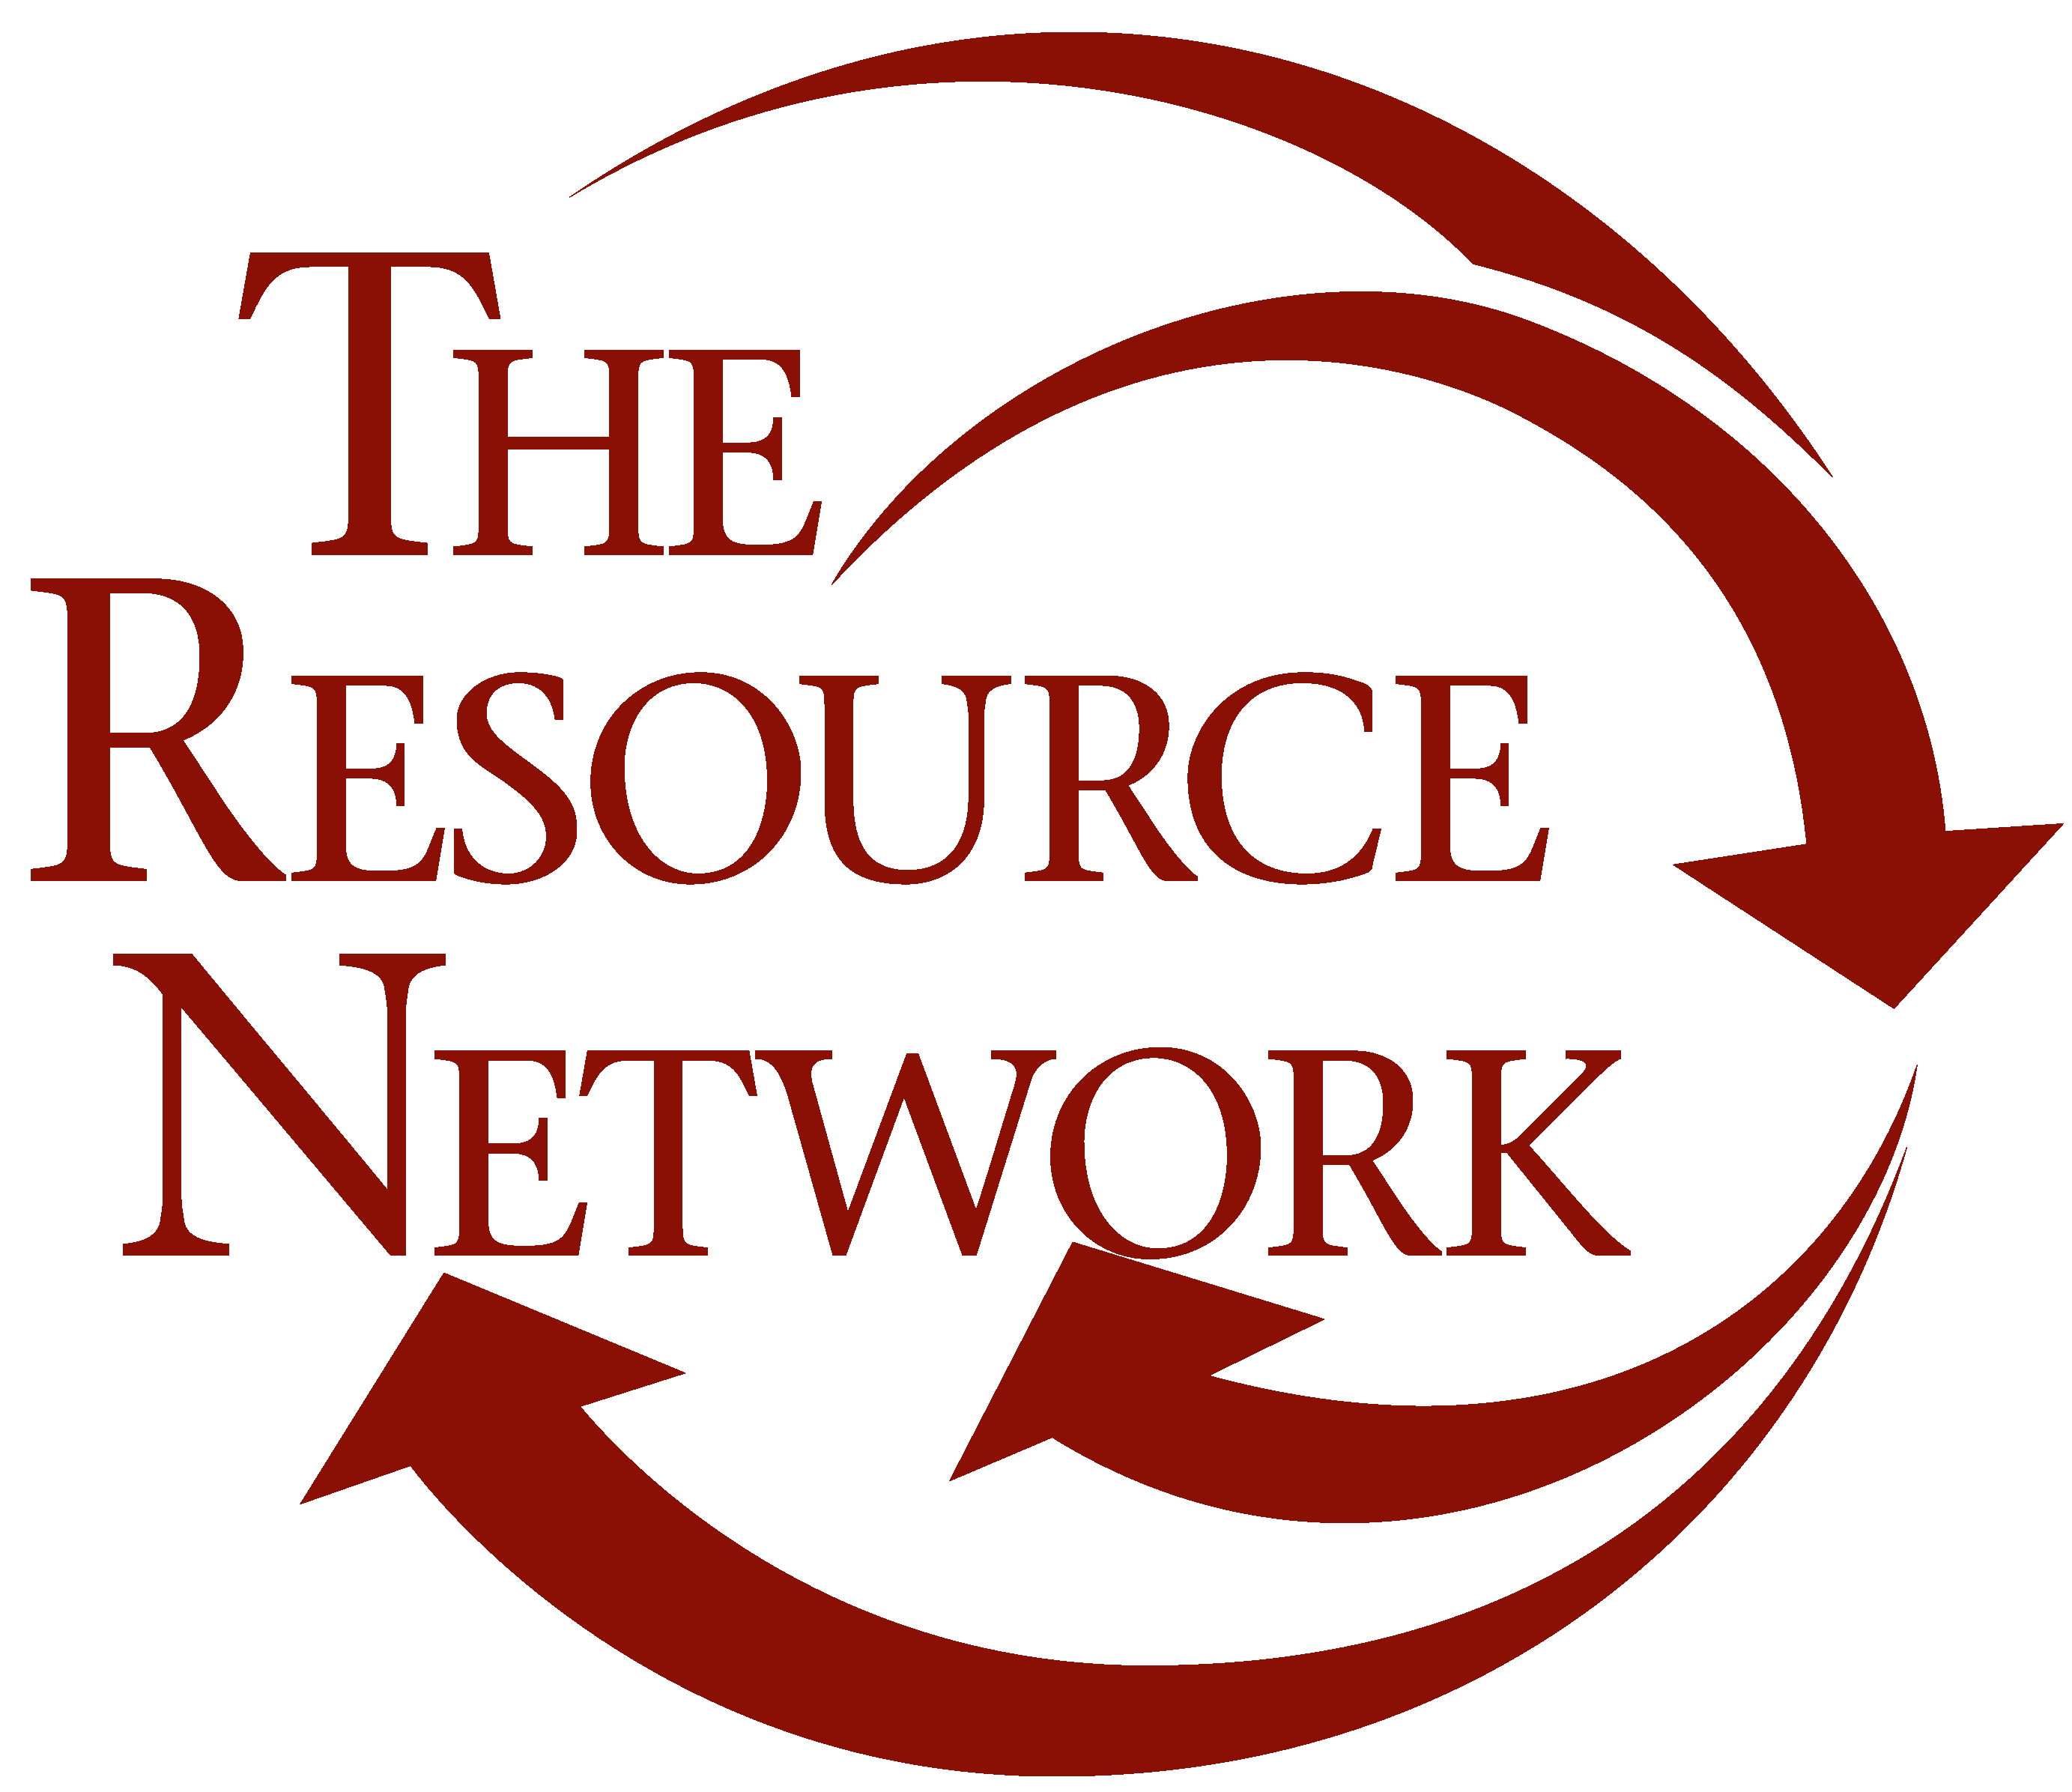 The Resource Network Logo. A red logo with arrows around the letters